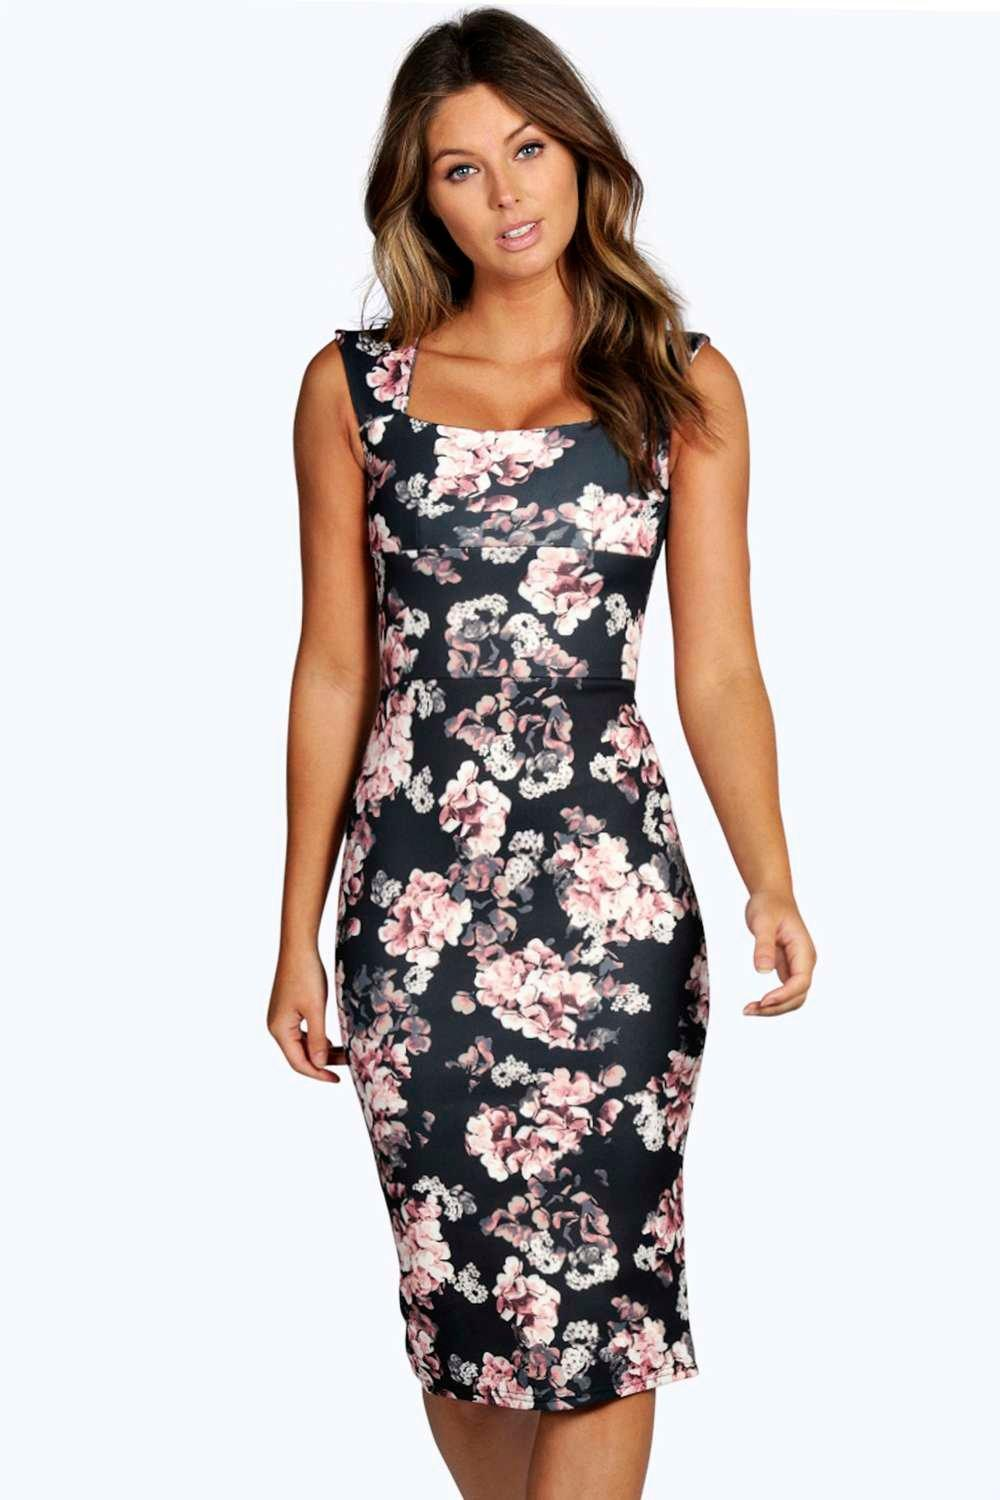 Elsa floral printed midi dress at for Boohoo dresses for weddings